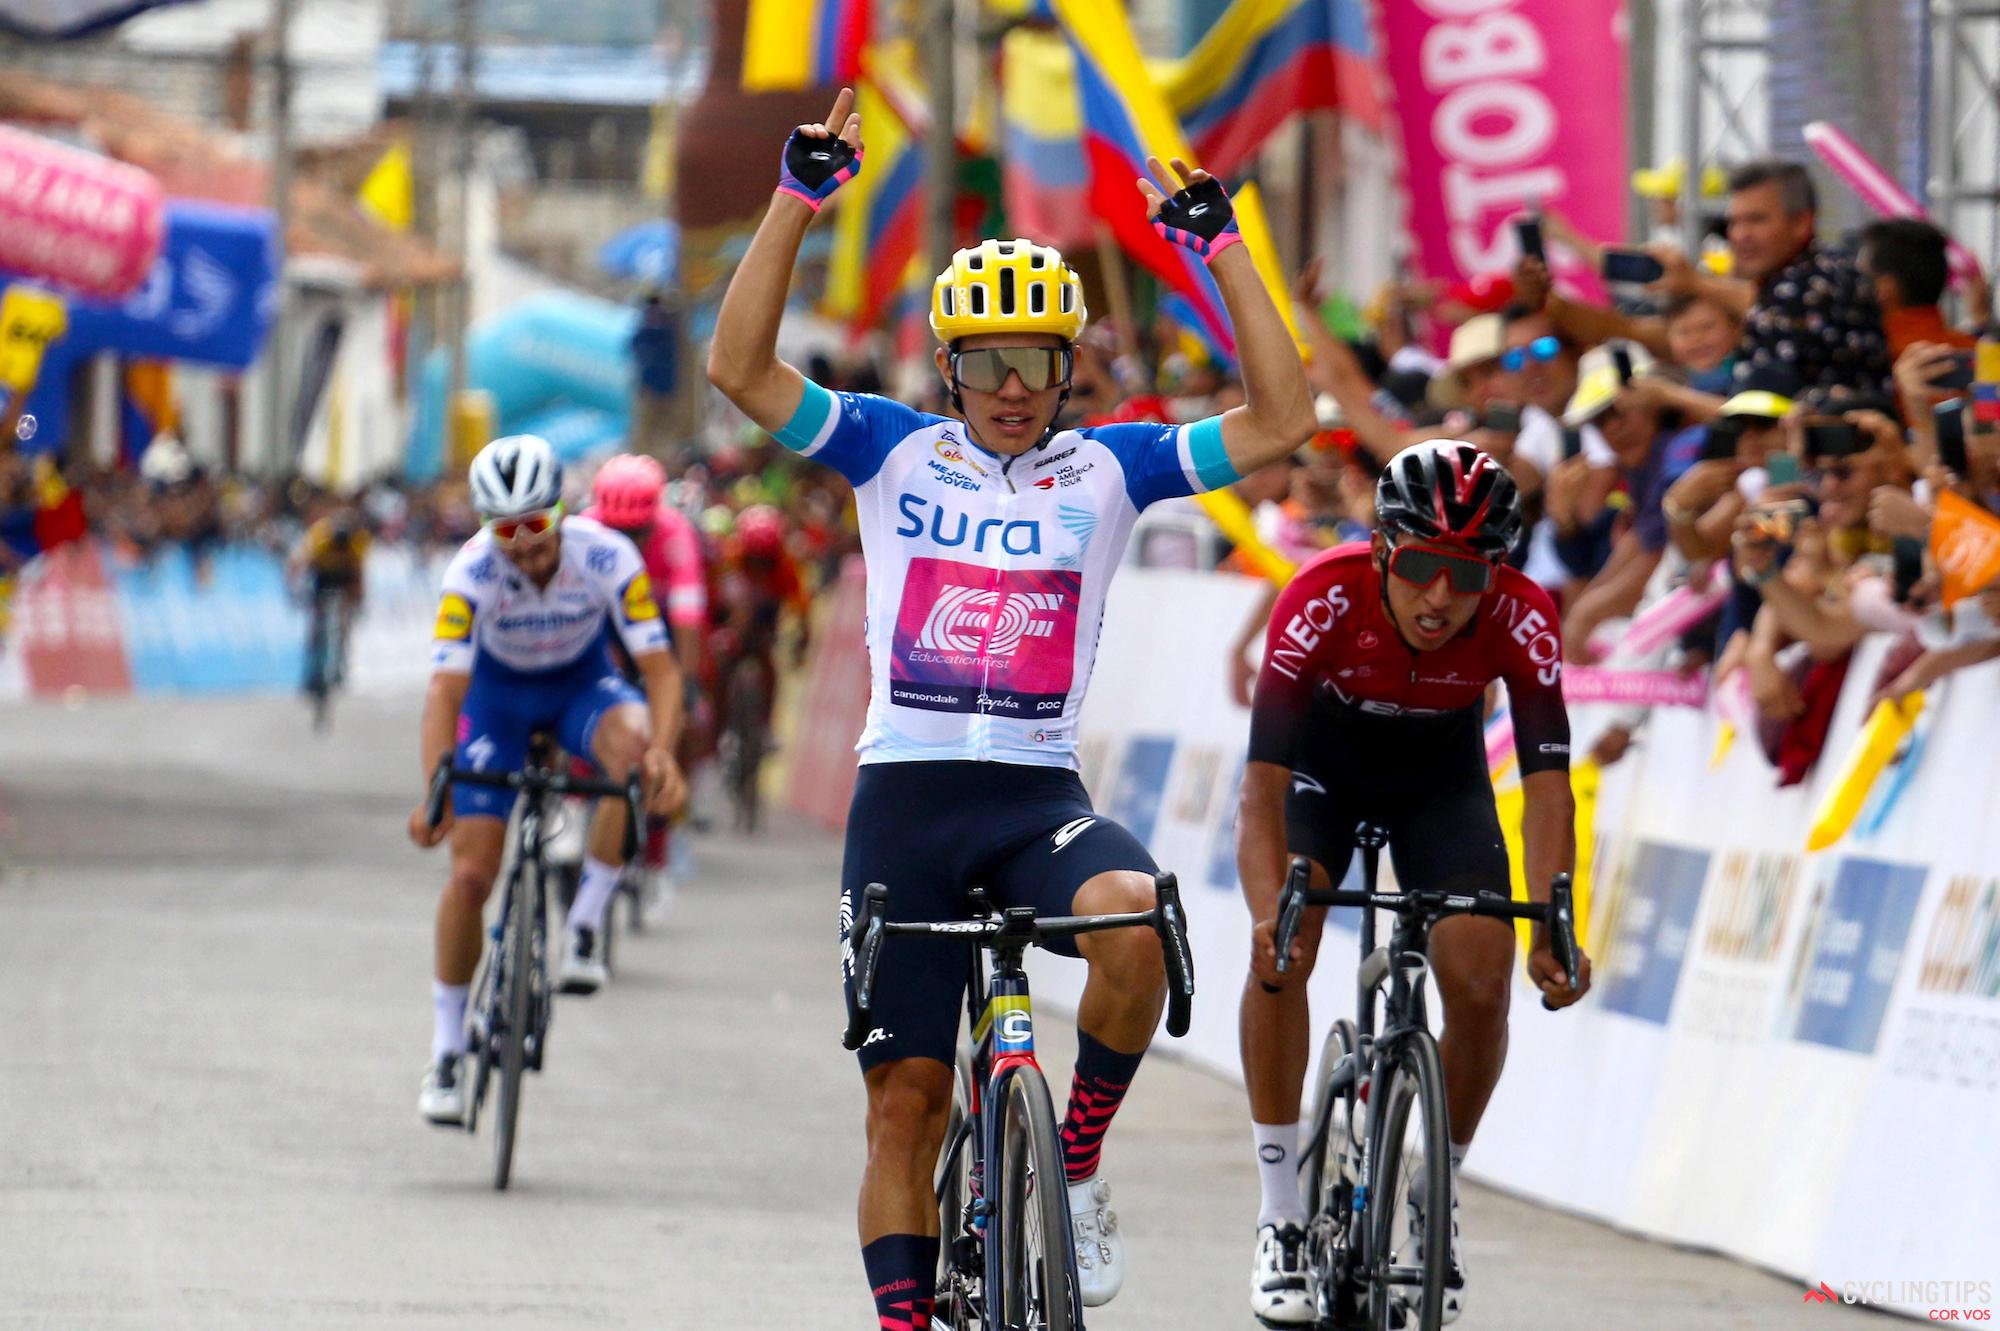 Stars shine on Tour Colombia stage 4: Daily News Digest